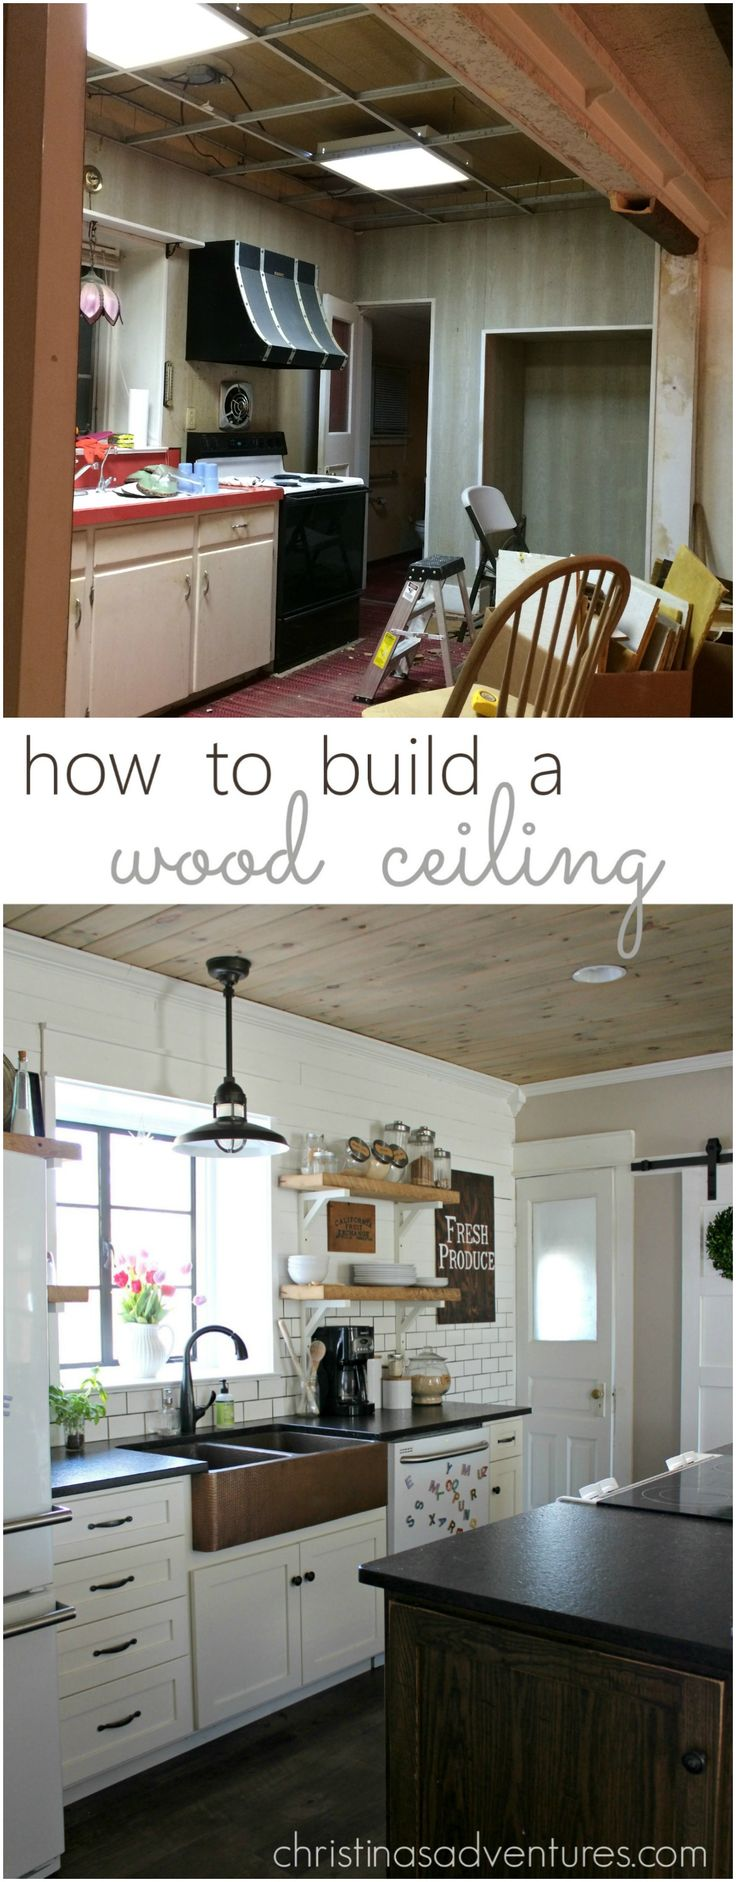 Super helpful step-by-step instructions on how to build a wood ceiling.  Perfect for adding farmhouse charm & character!